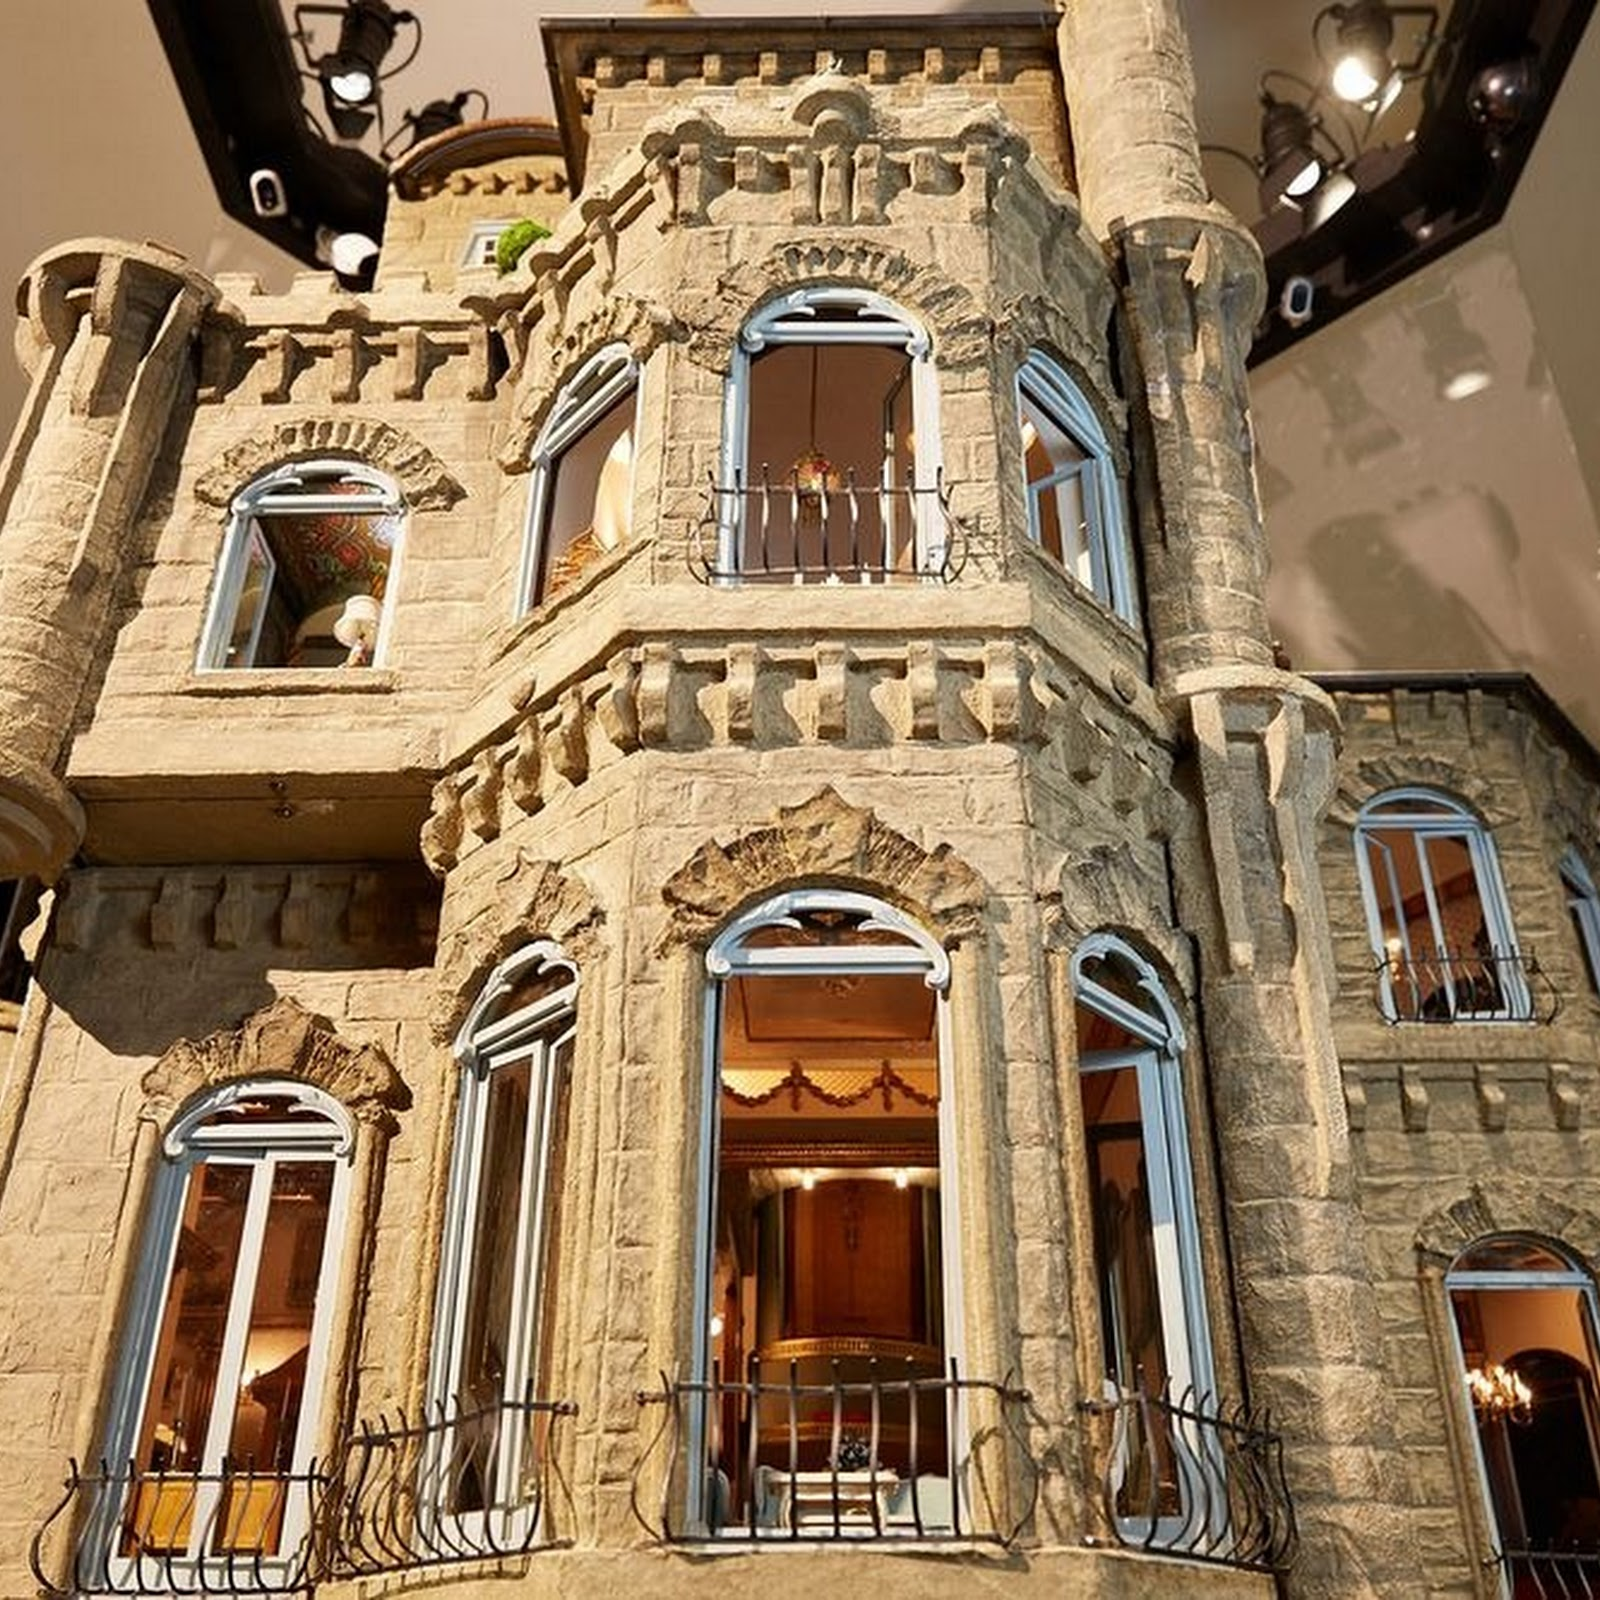 The $8.5 Million Astolat Dollhouse Castle: World's Most Expensive Dollhouse